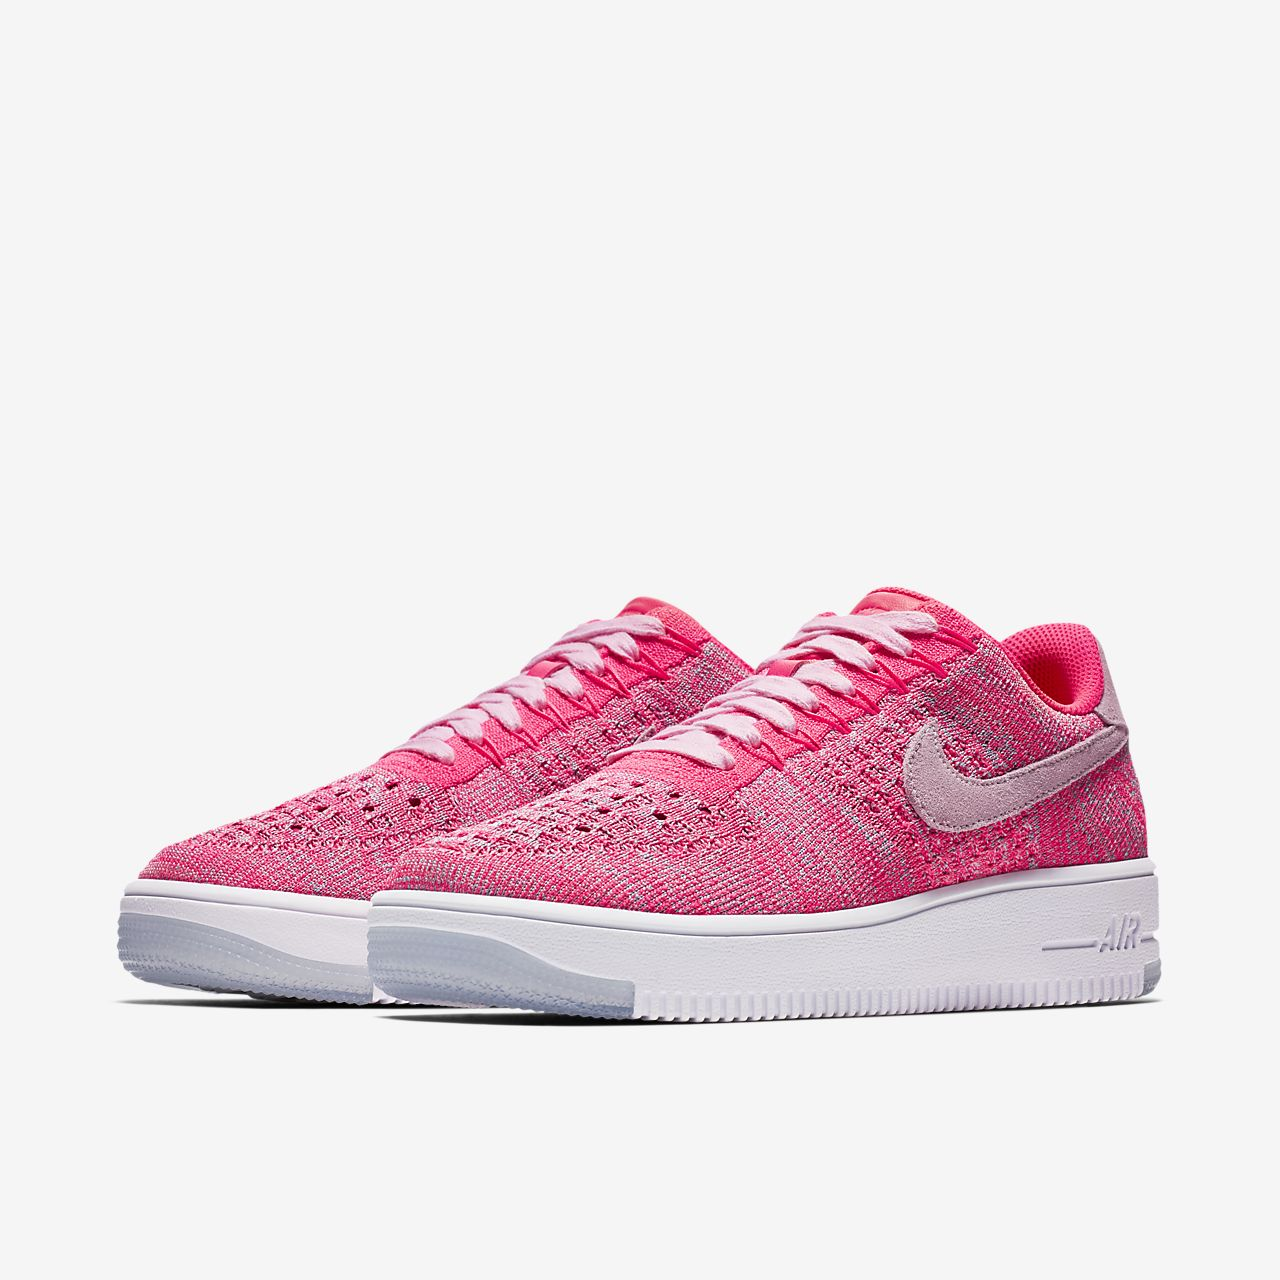 ... Chaussure Nike Air Force 1 Flyknit Low pour Femme